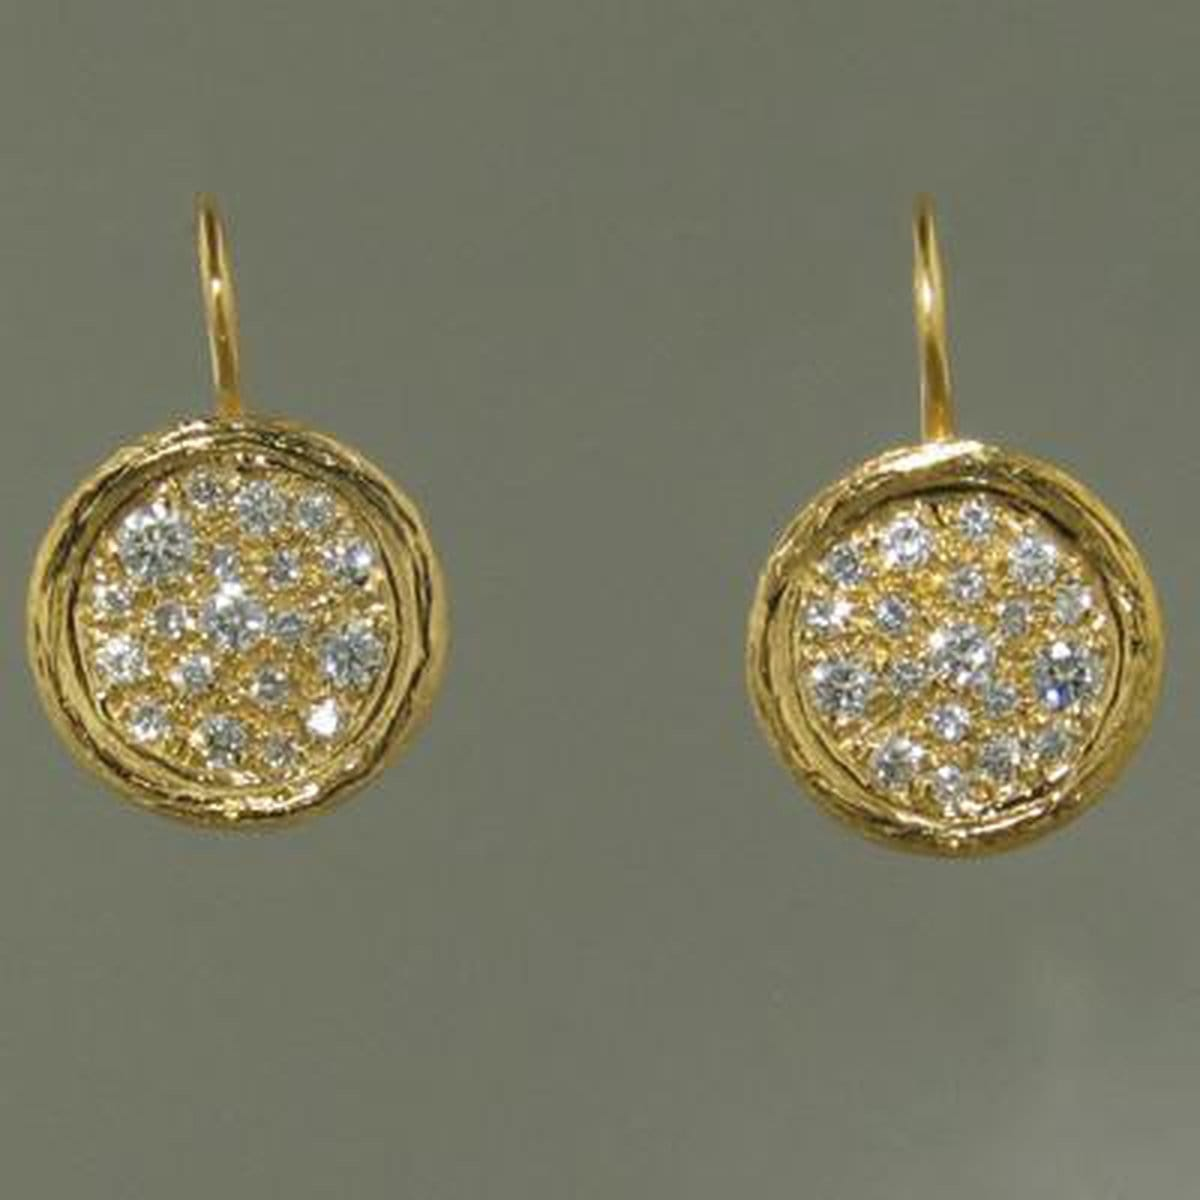 Marika Diamond Earrings - M4195-Marika-Renee Taylor Gallery